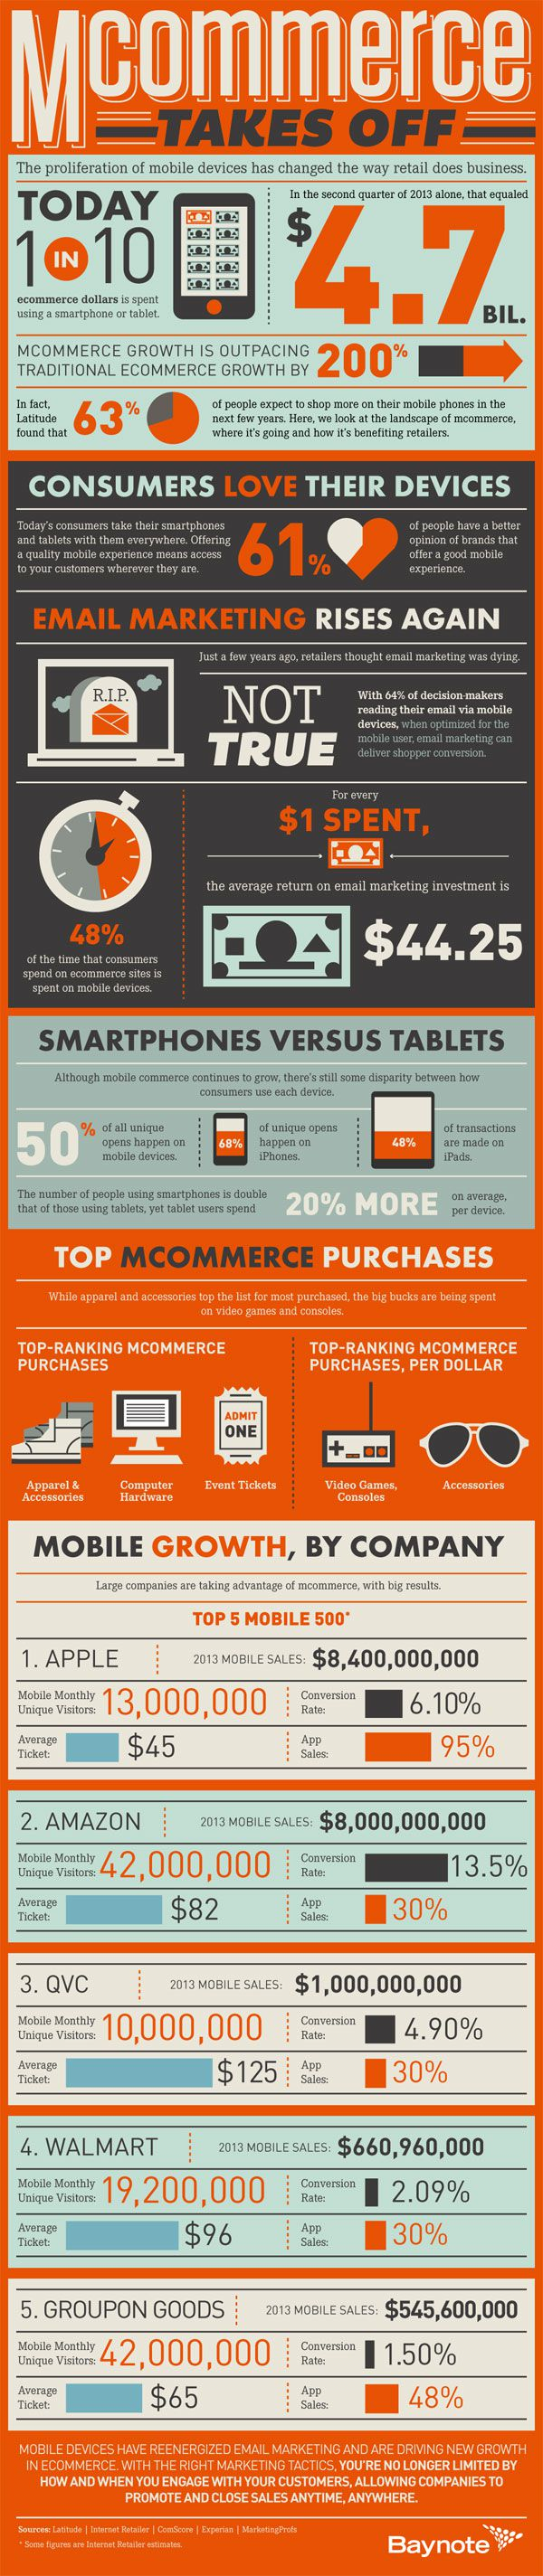 Mobile commerce taking off - infographic by Baynote - 2013